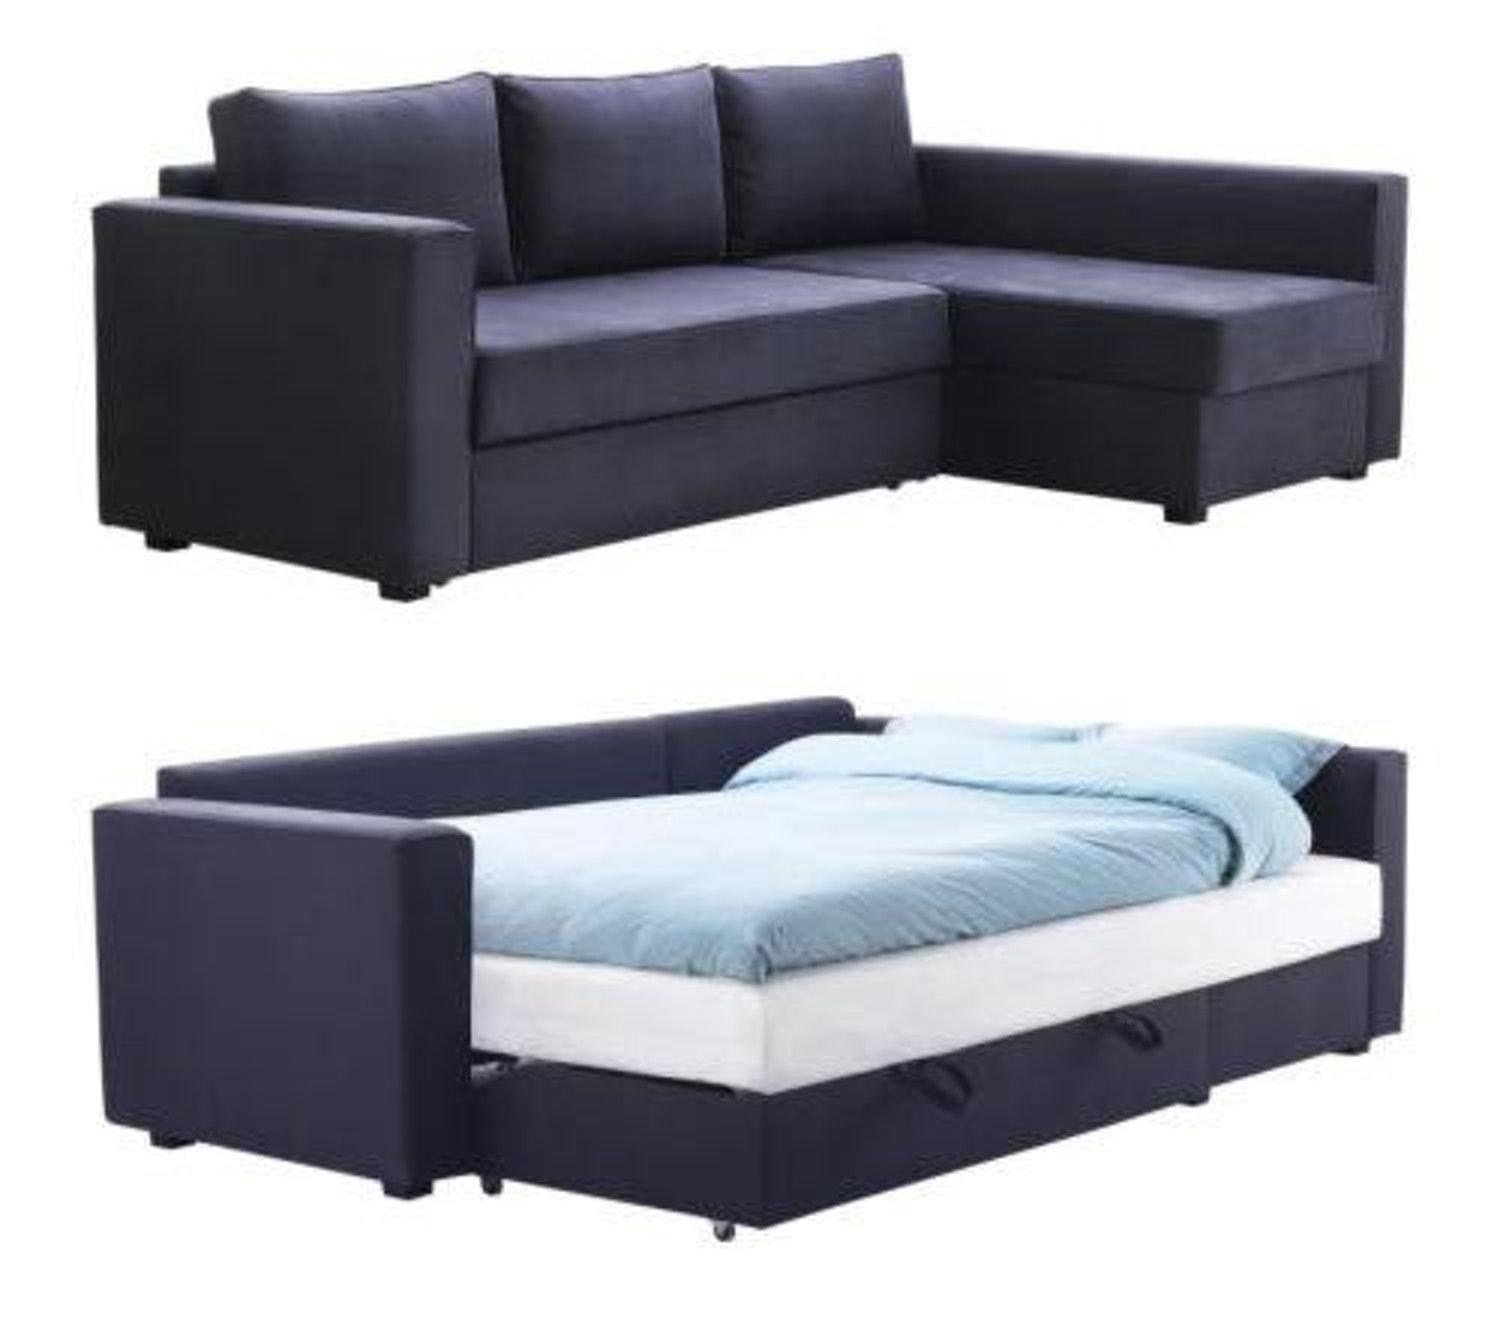 Manstad Sectional Sofa Bed Storage From Ikea Sofa Sleeper Of The Within Manstad Sofa Bed (Image 14 of 20)